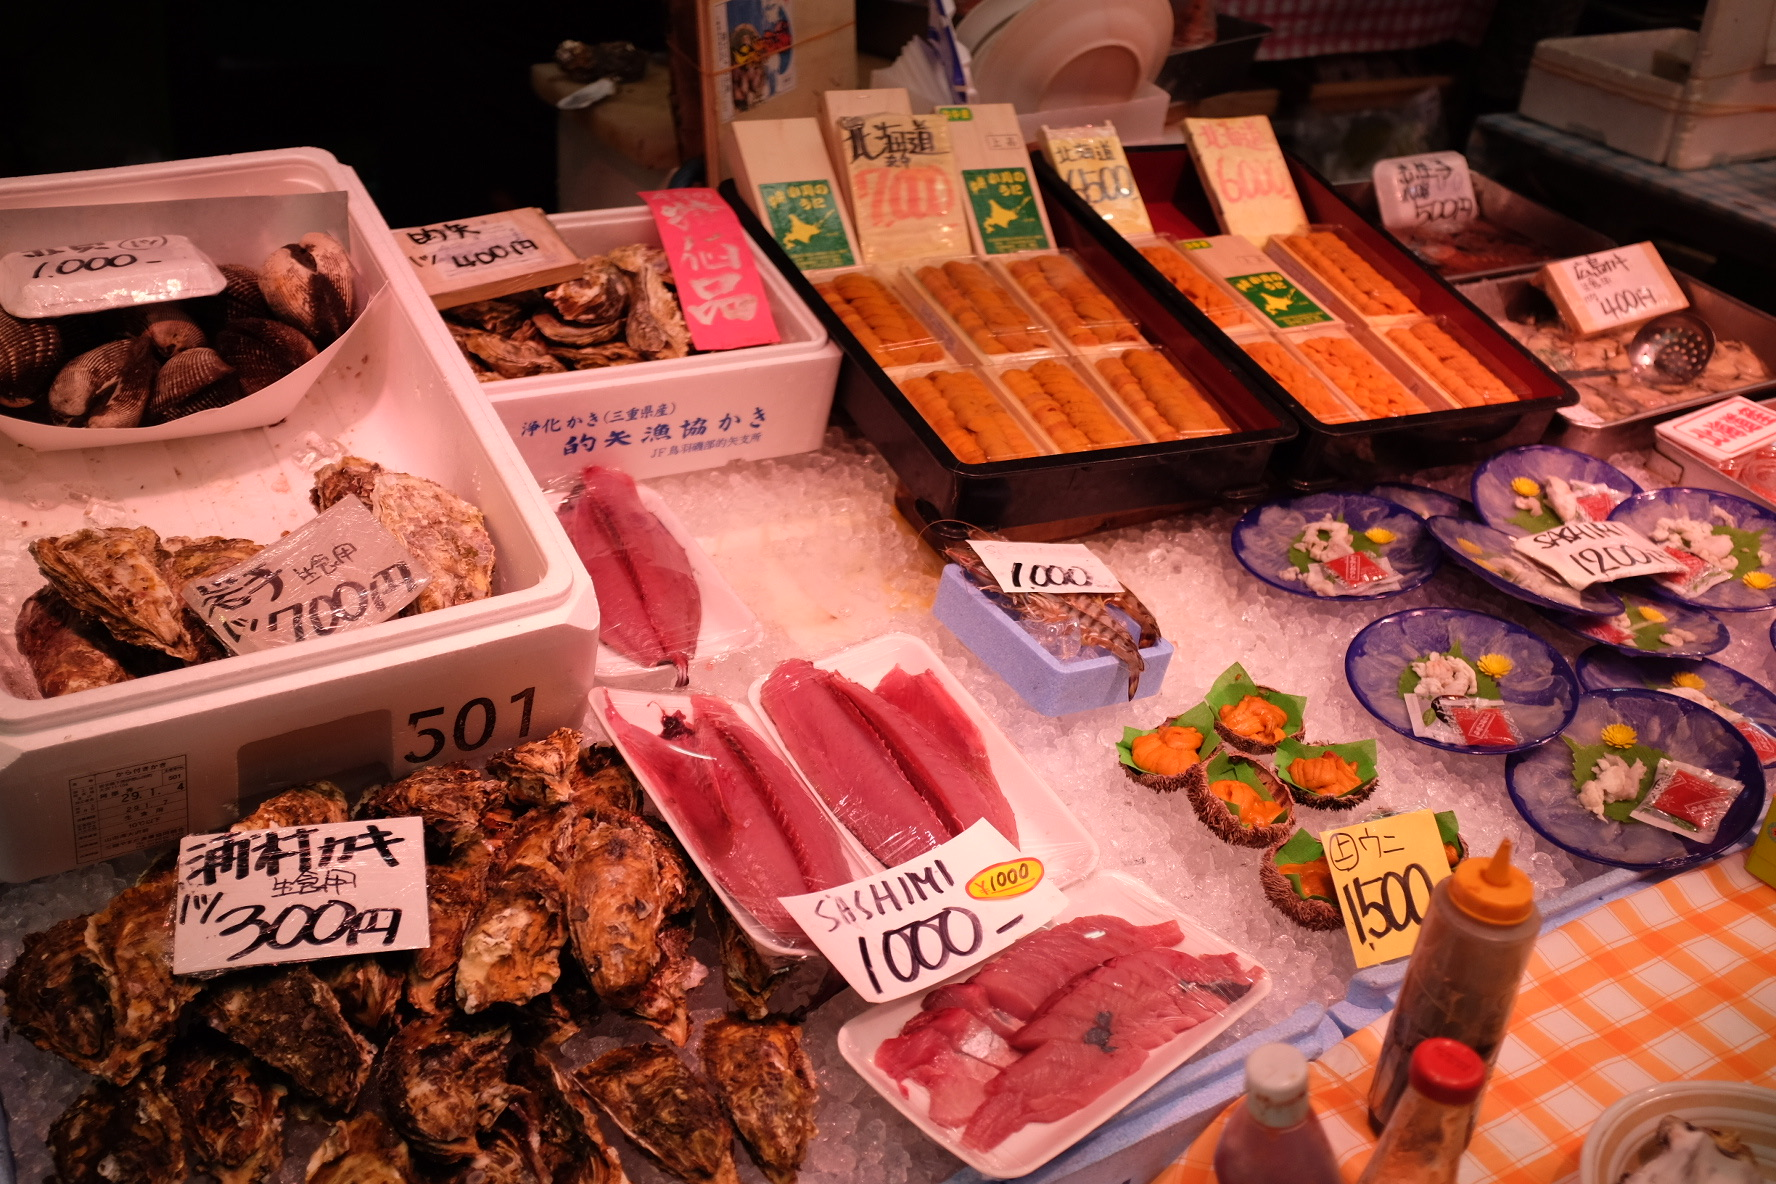 One of the many markets in Osaka. You can eat all these seafood right on the spot. Some memorable ones include fugu sashimi, uni in shell, and shirako (fish sperm).